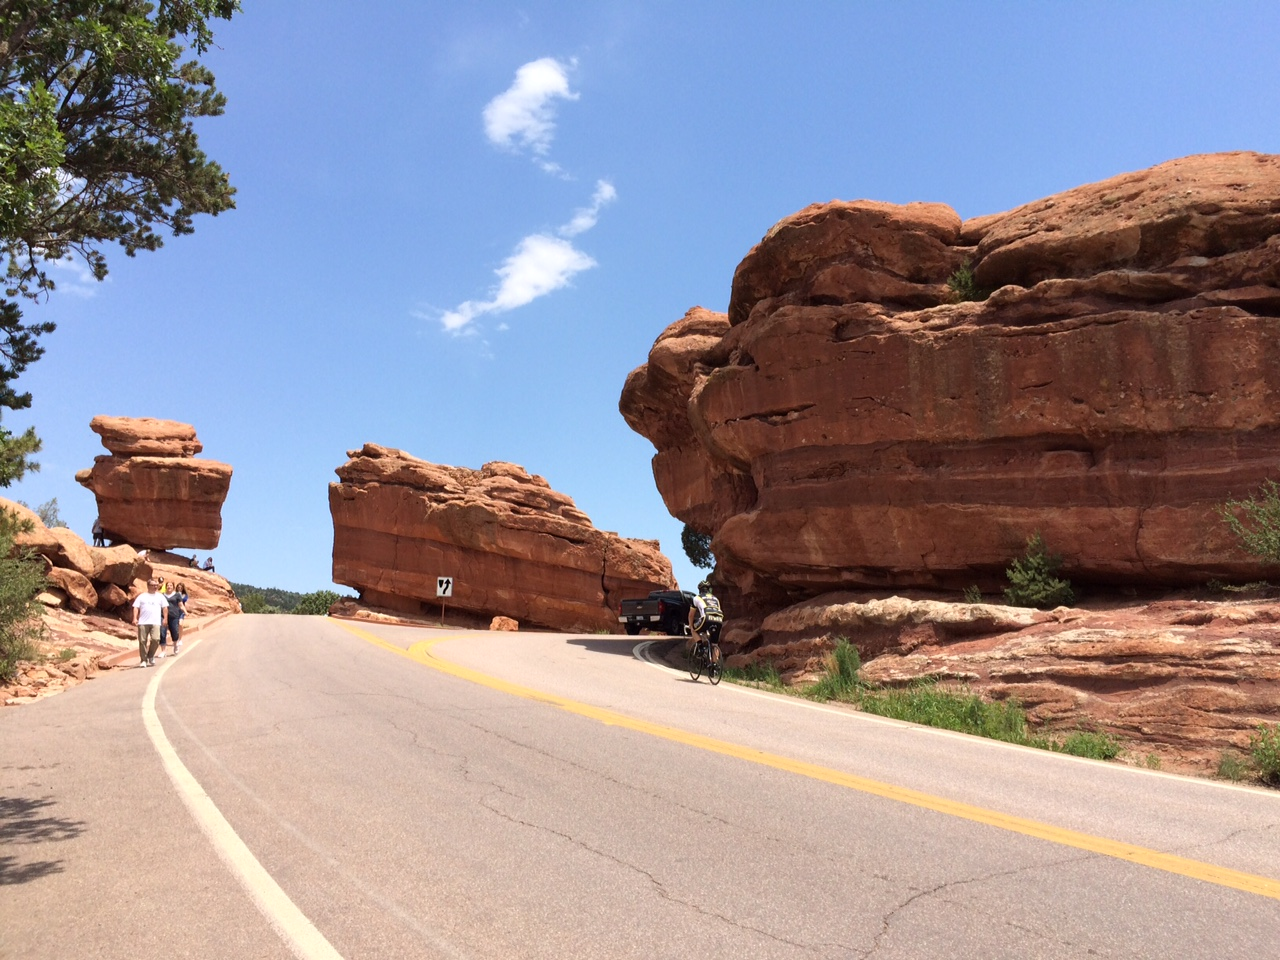 Here are a couple balancing rock formations in the Garden of the Gods.